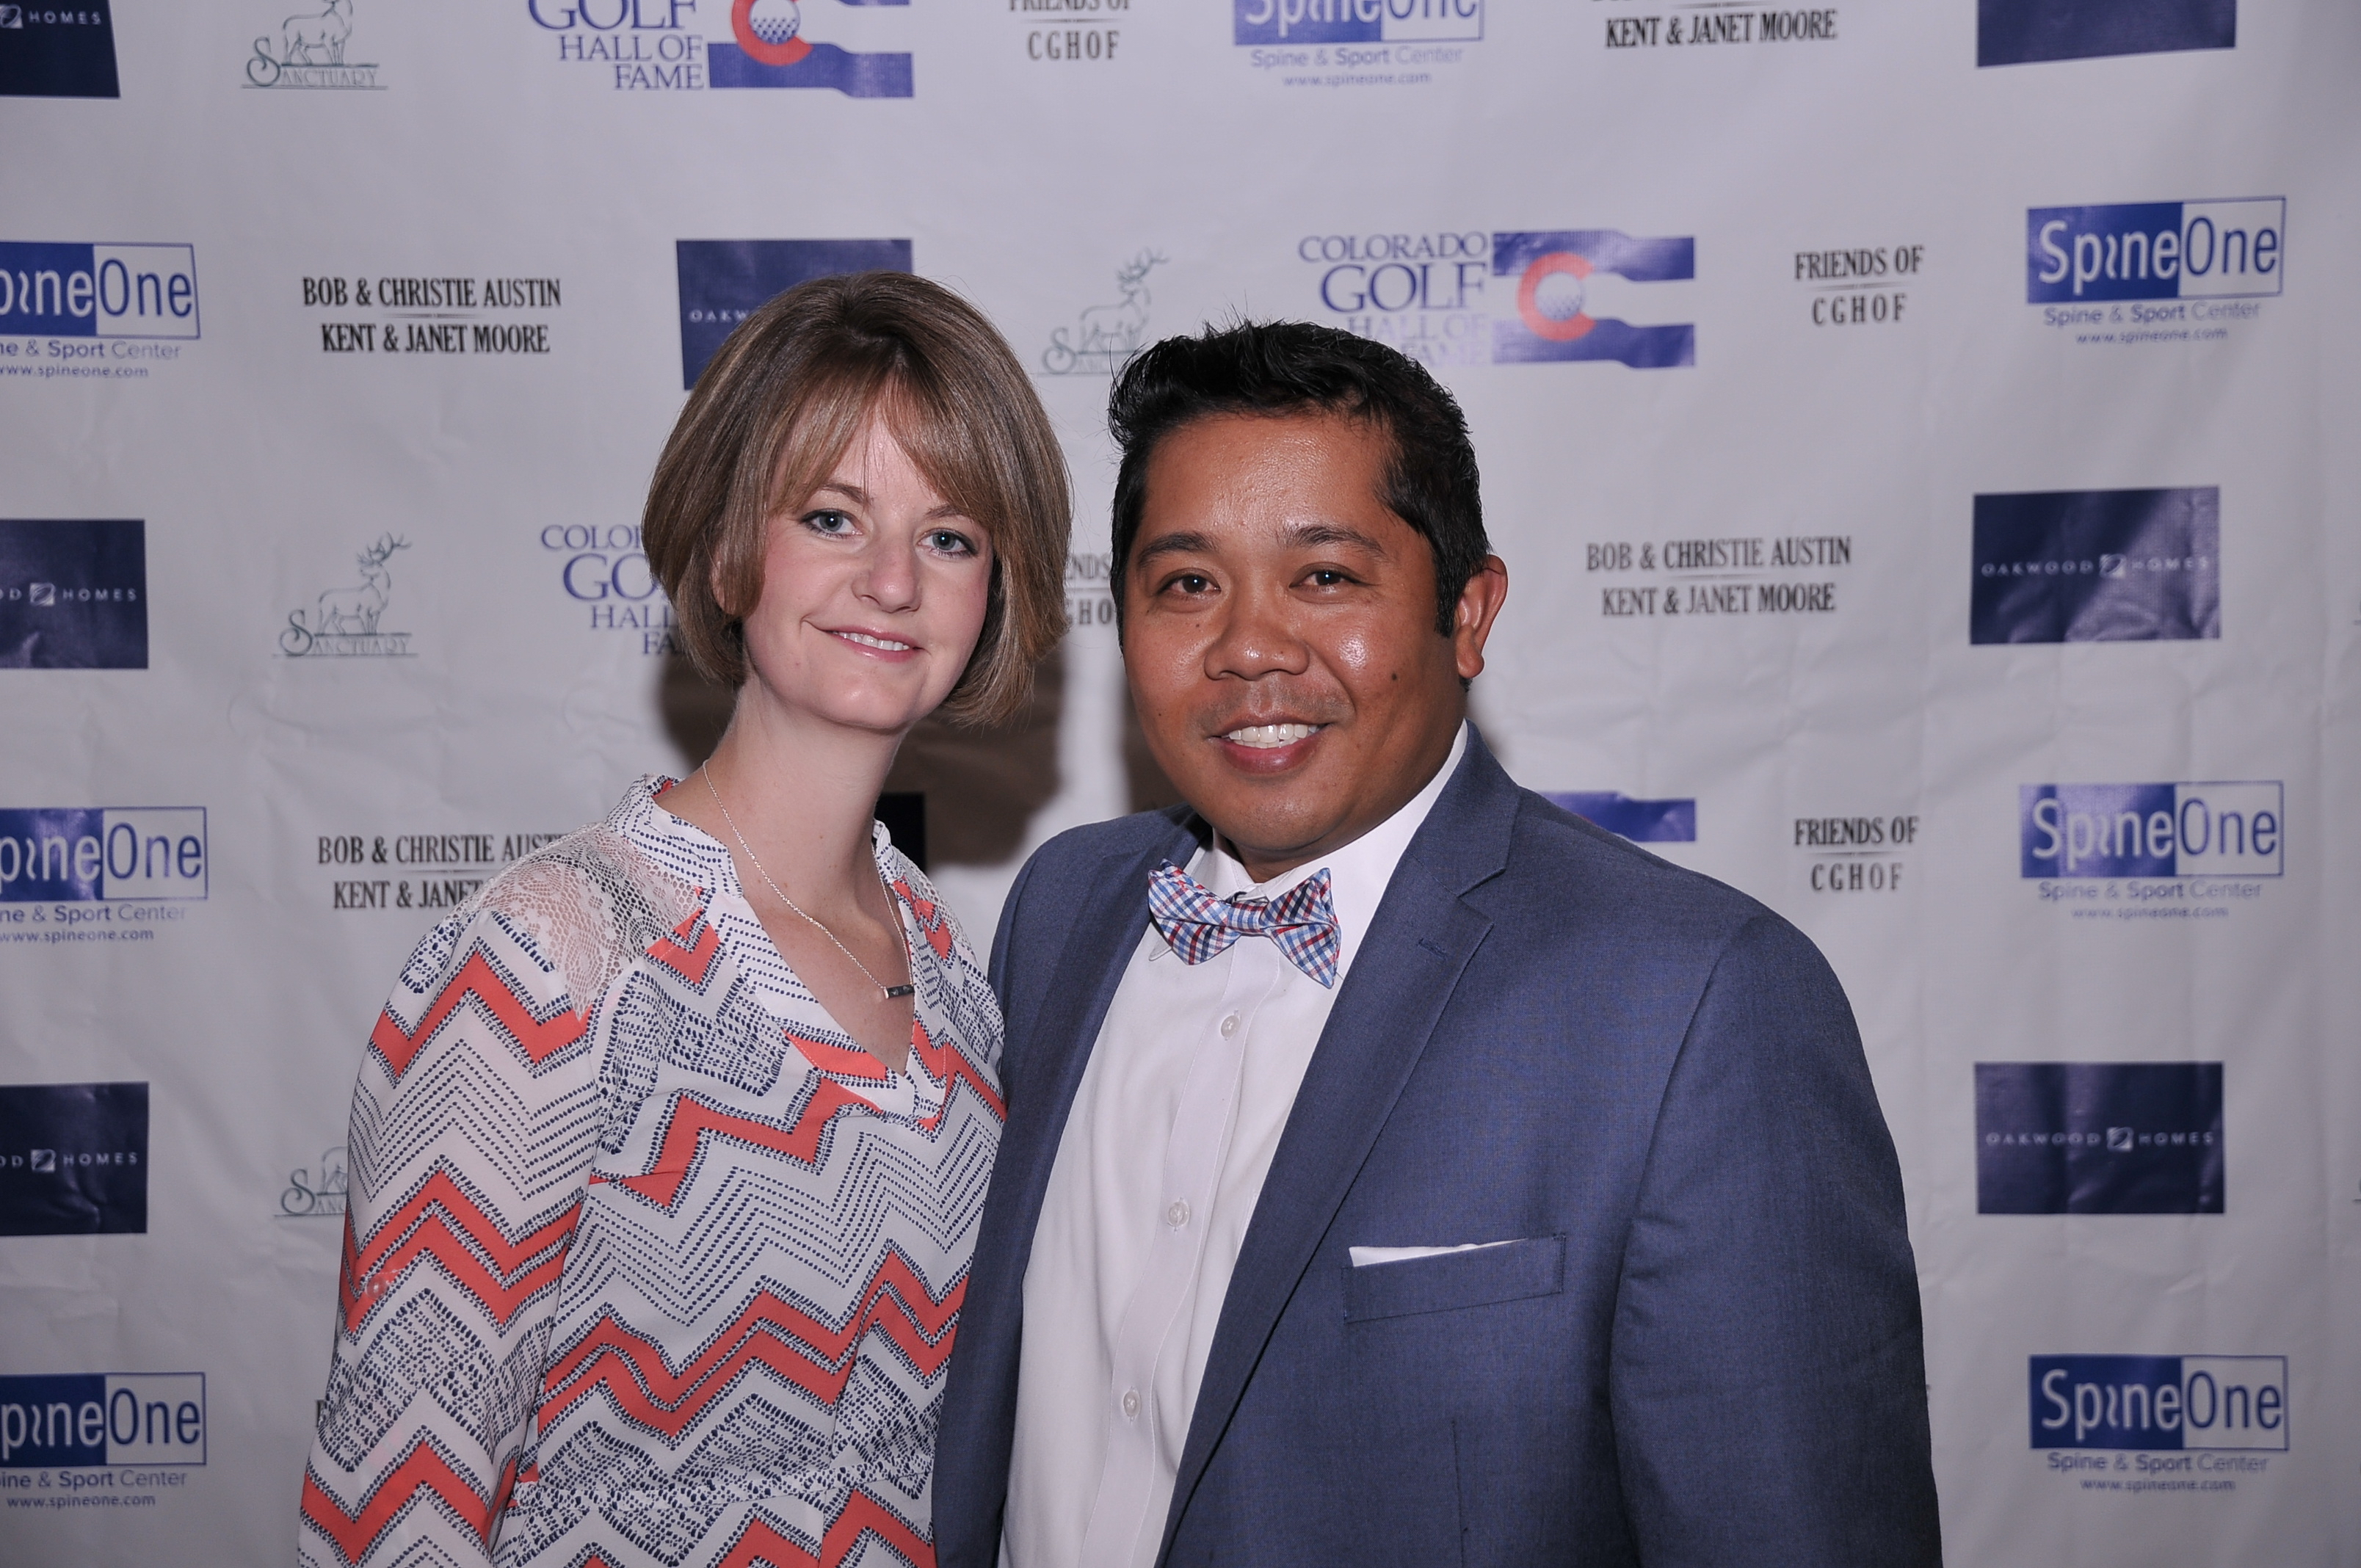 Keith and Holly Soriano